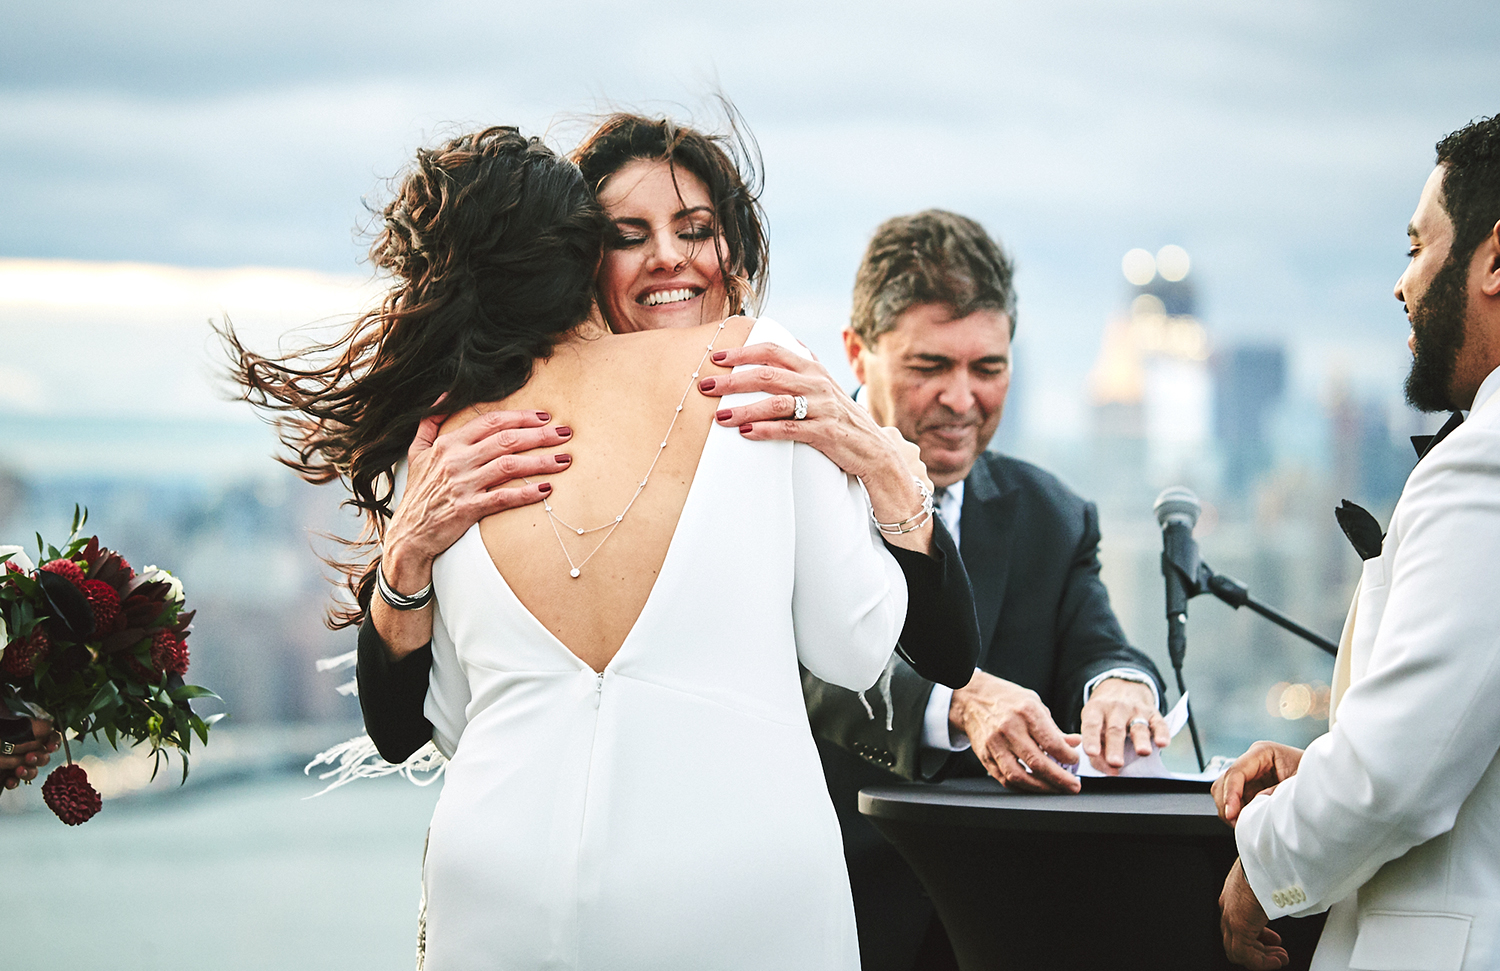 170930_WilliamValeWeddingPhotography_BrooklynWeddingPhotographer_By_BriJohnsonWeddings_0123.jpg